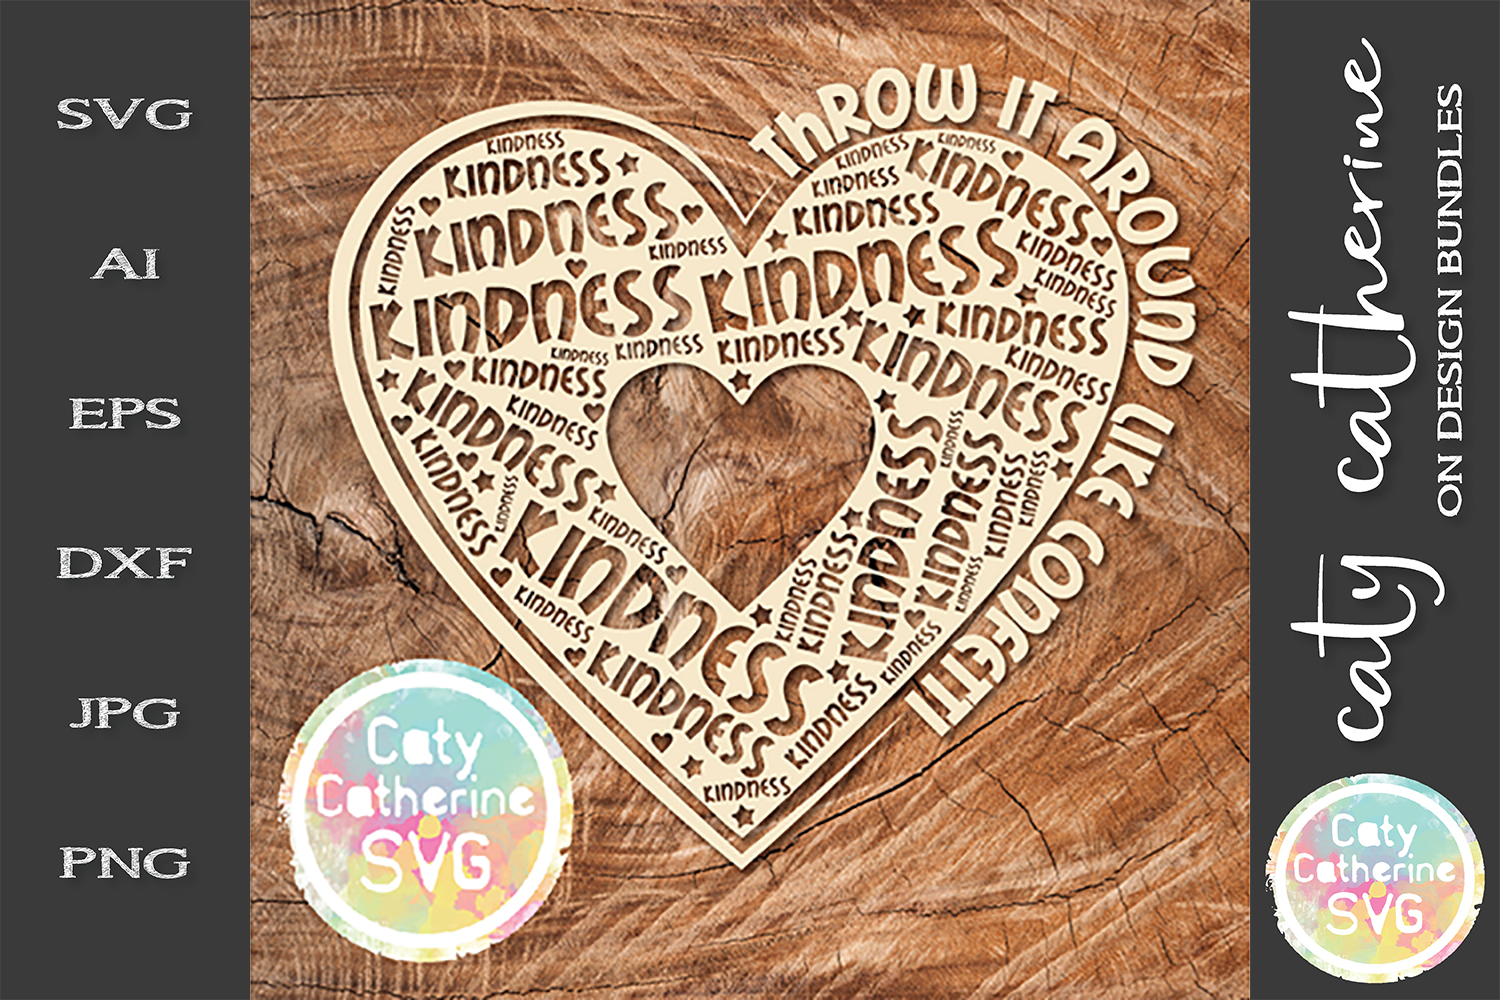 Kindness Throw It Around LiKe Confetti SVG Cut File example image 1